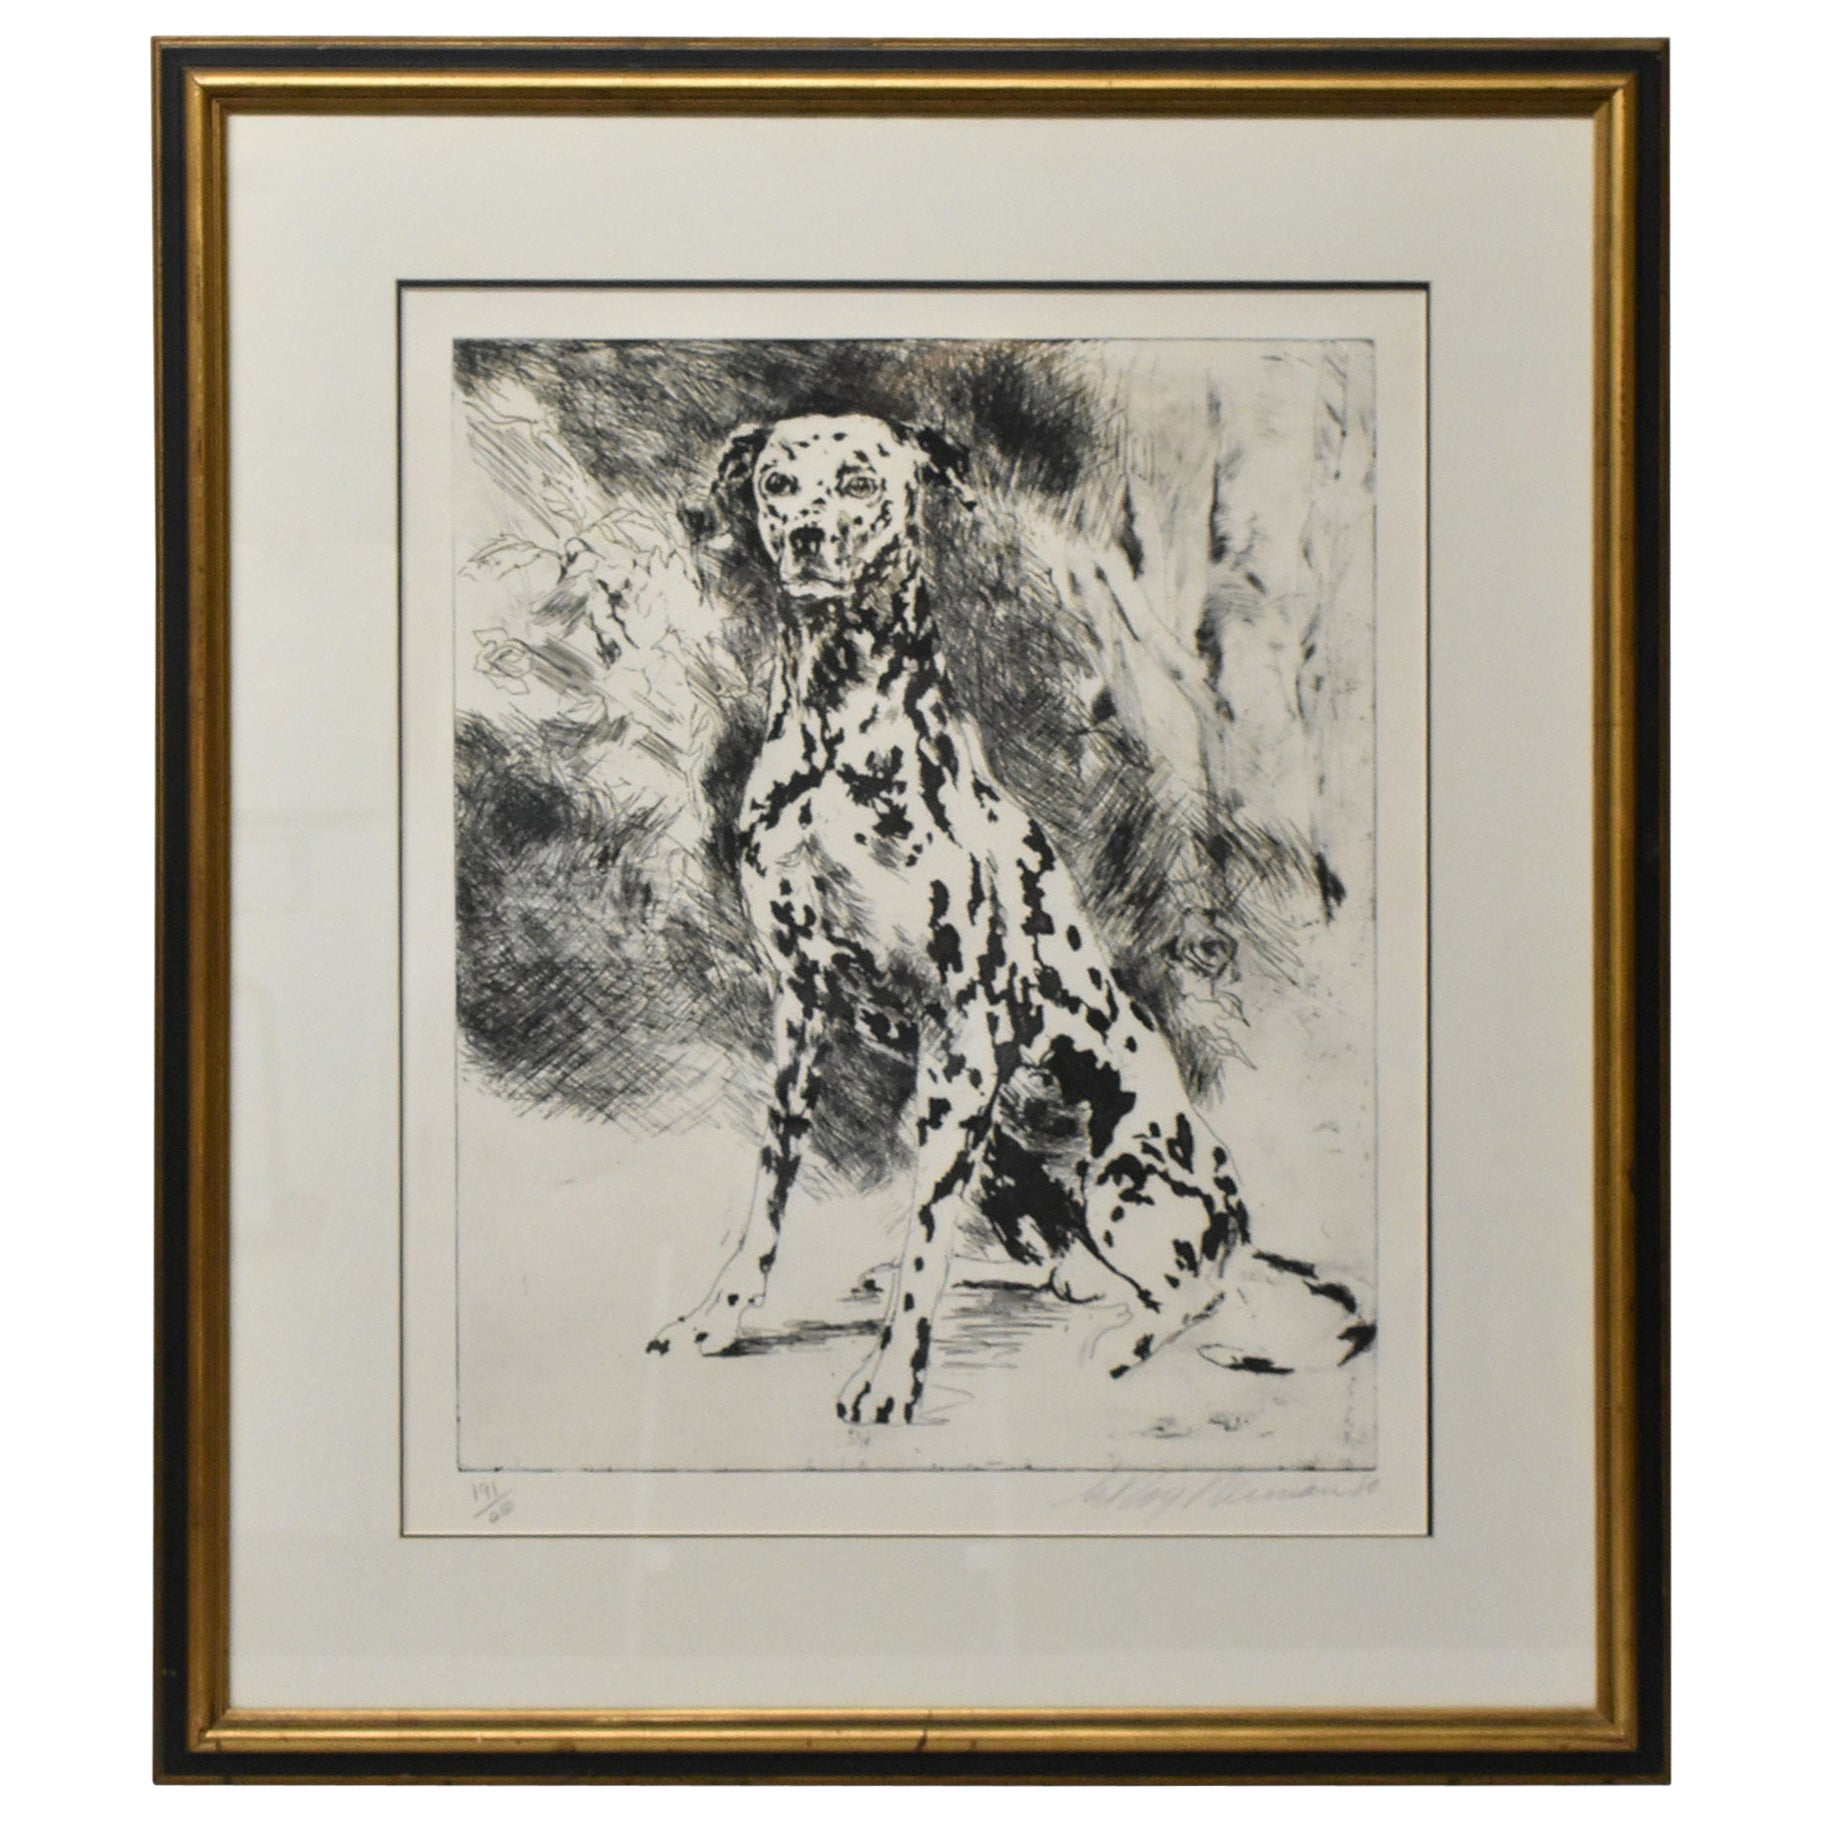 Leroy Neiman Signed & Numbered Limited Edition Etching 191/250 Dalmatian